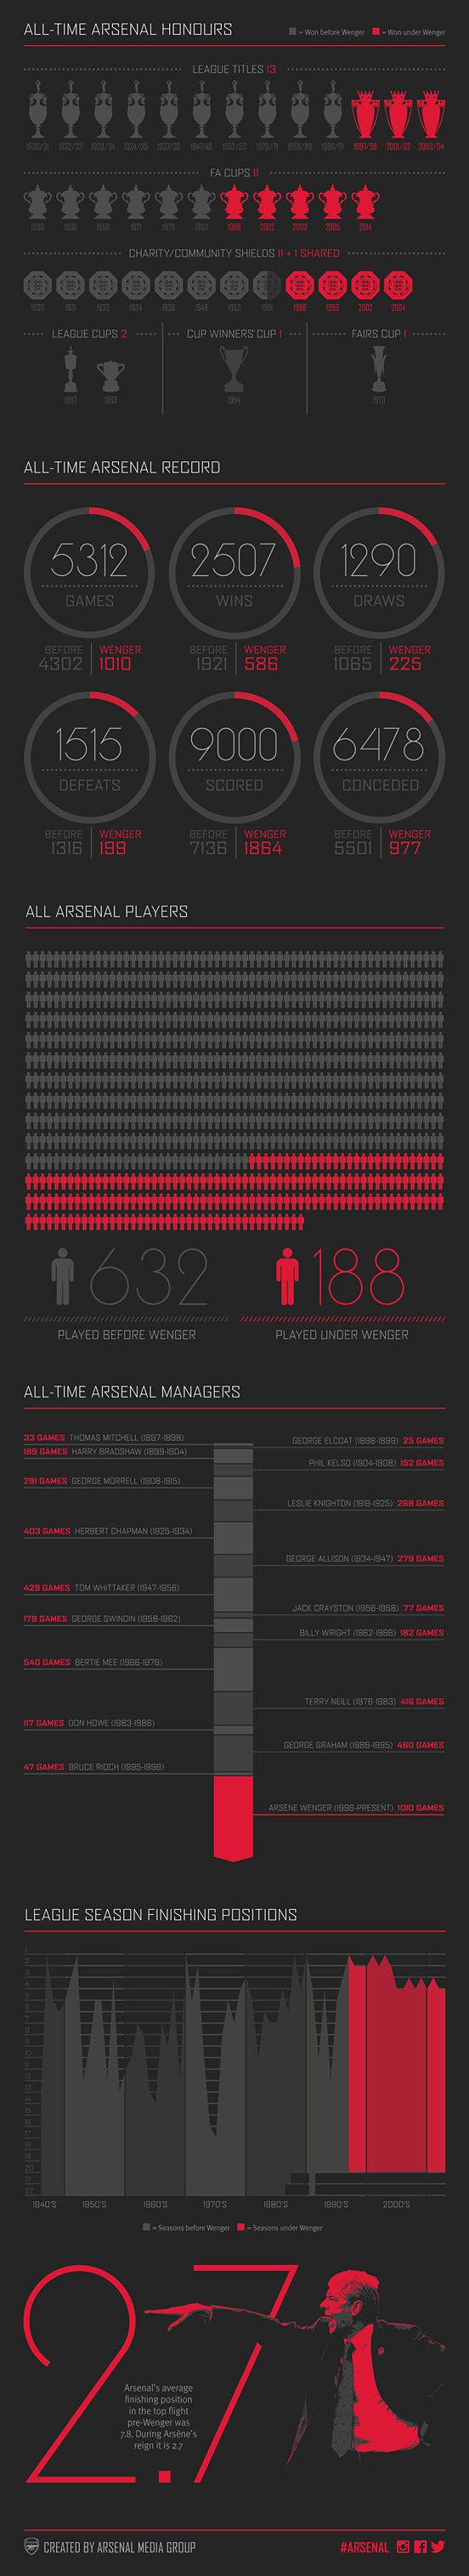 Arsene Wenger stats and infographic